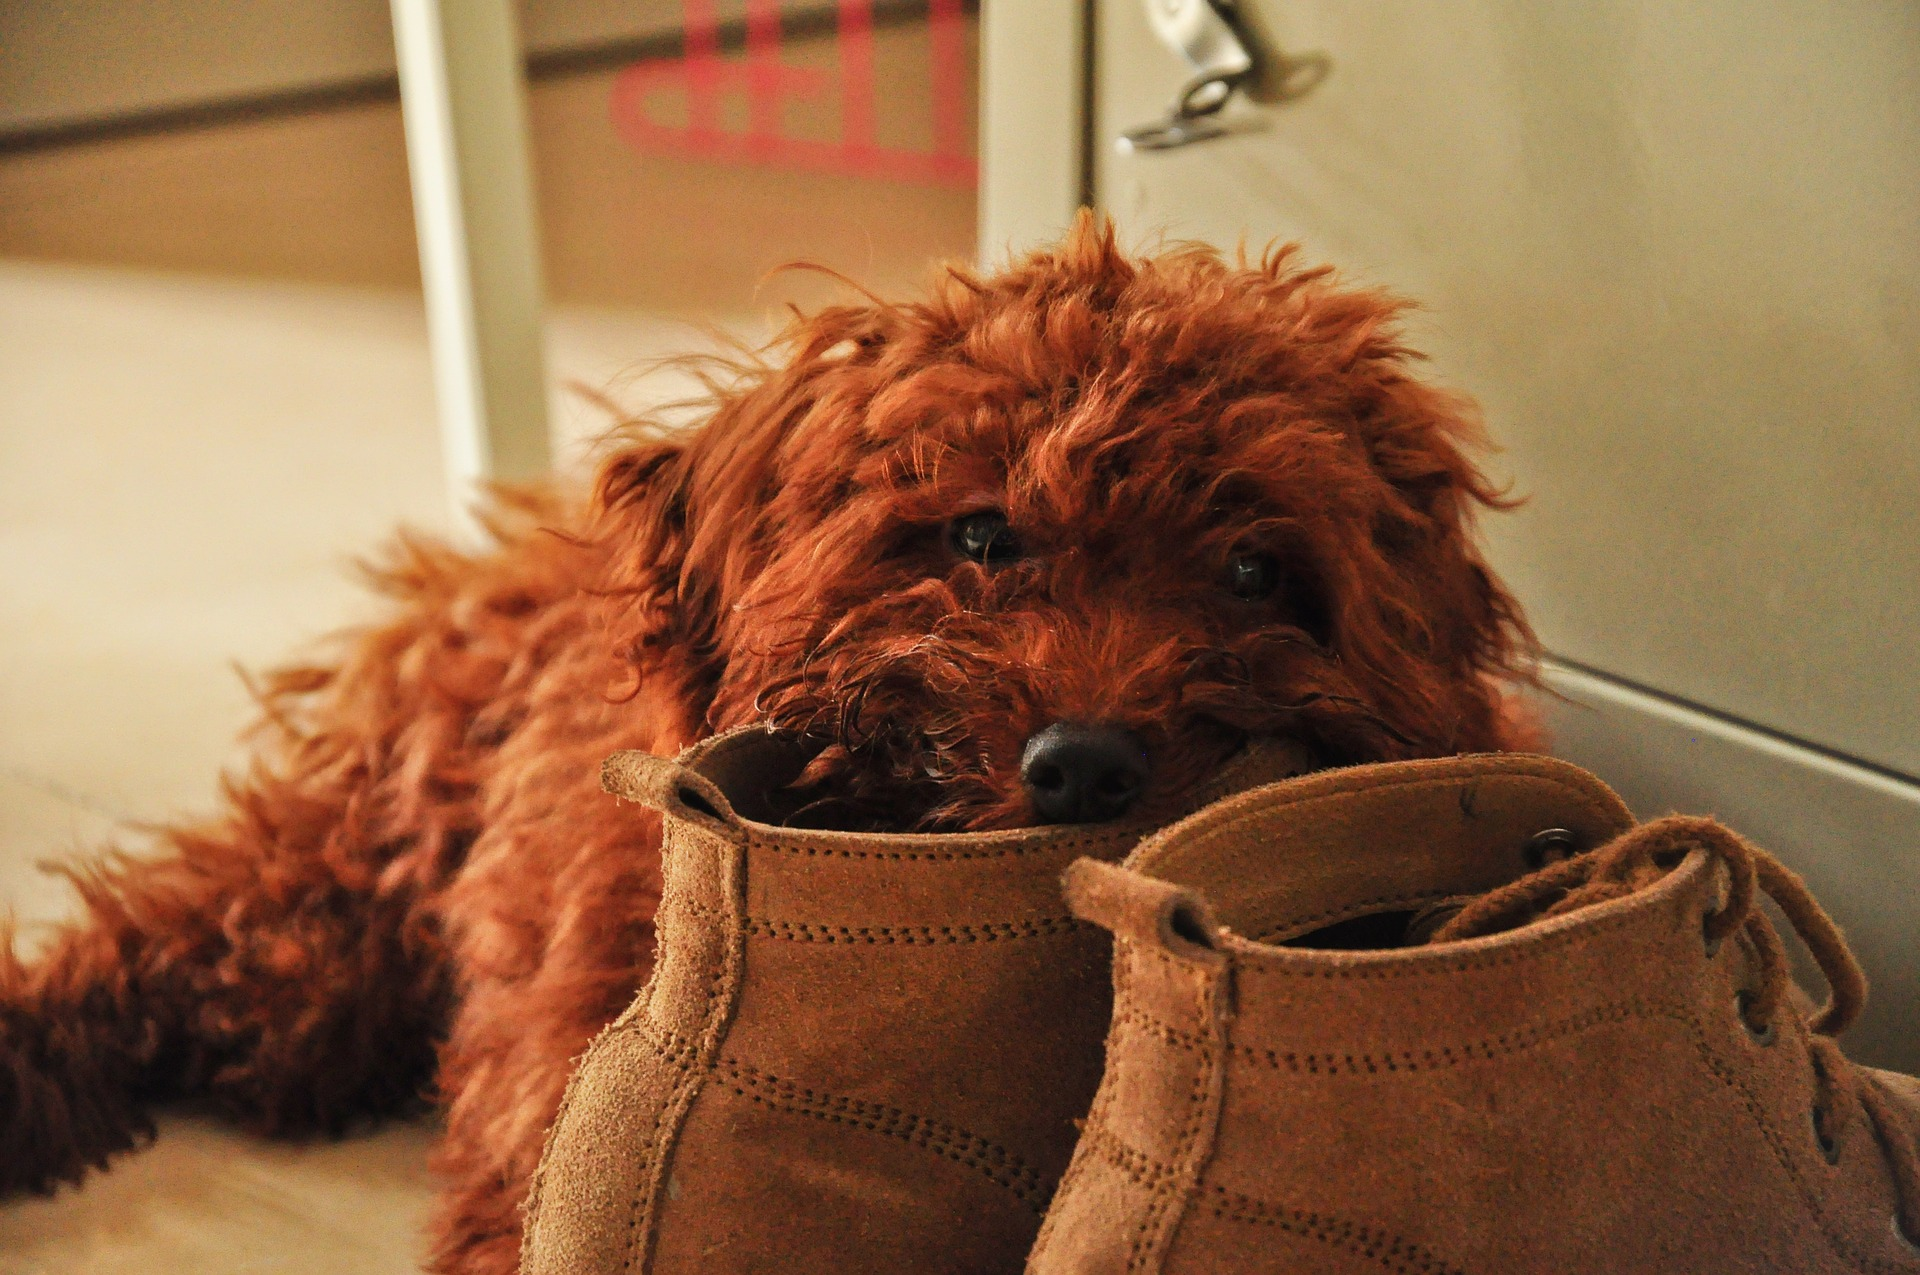 Shoes can look like lots of fun for pets who chew!